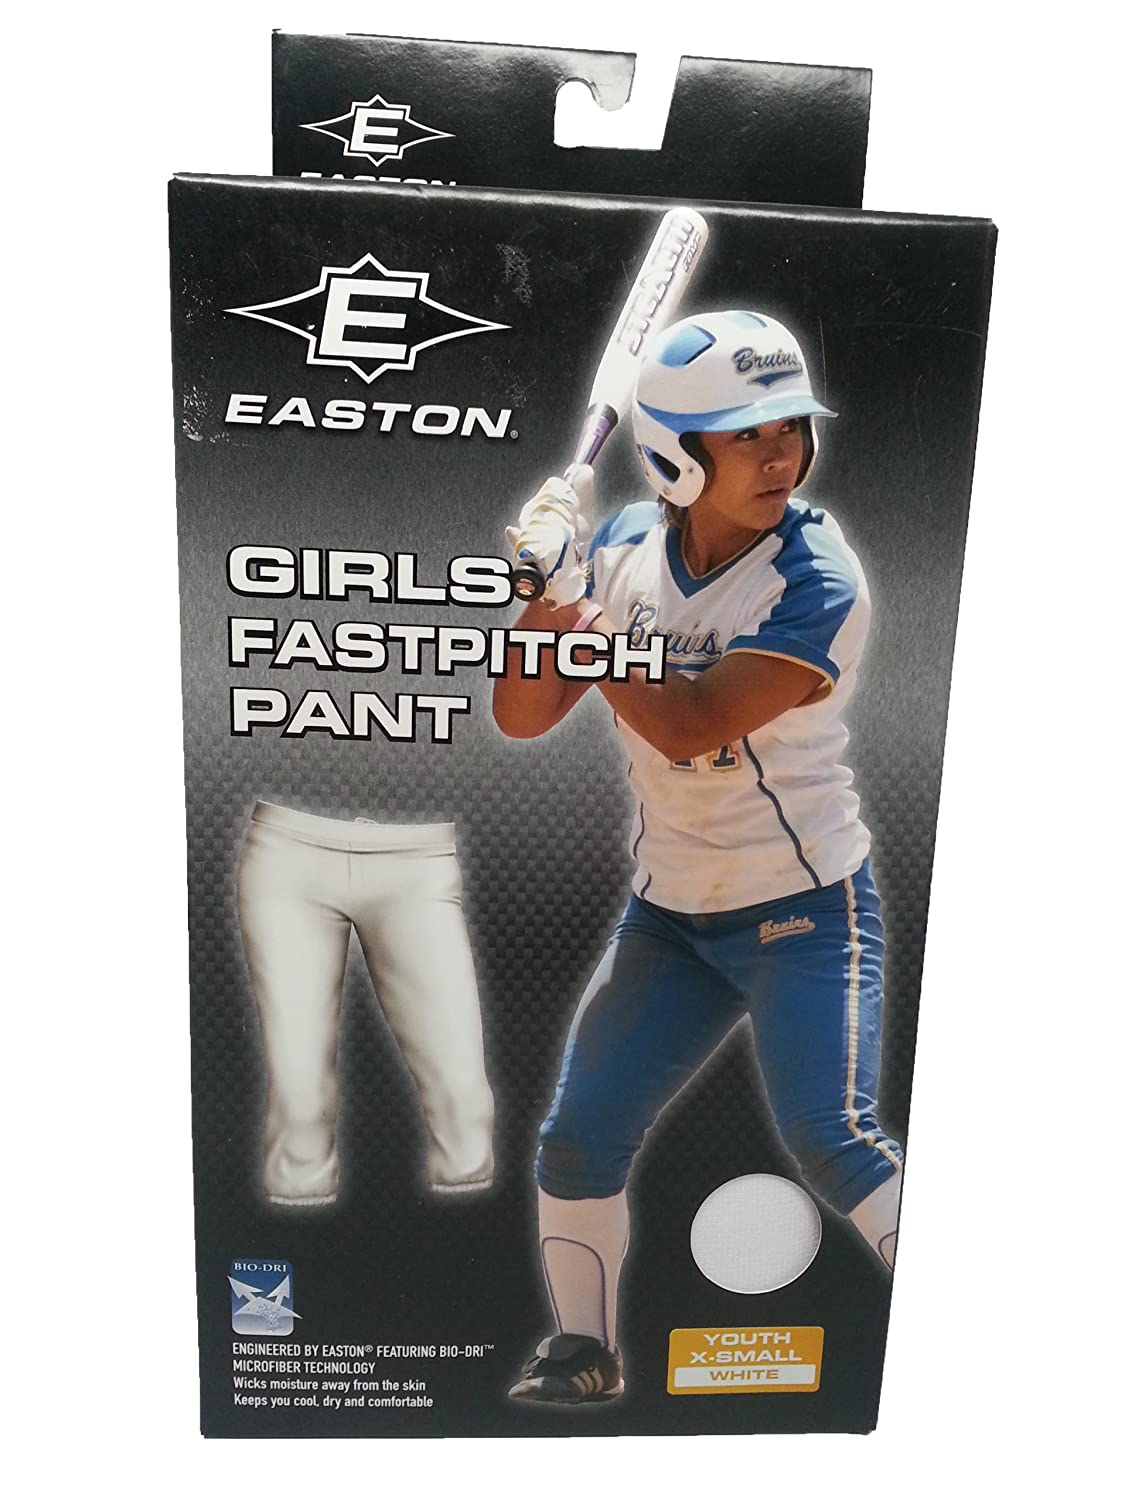 buy online a2bd2 b6a30 Easton Girl's Fastpitch White Softball Pants Size X-small